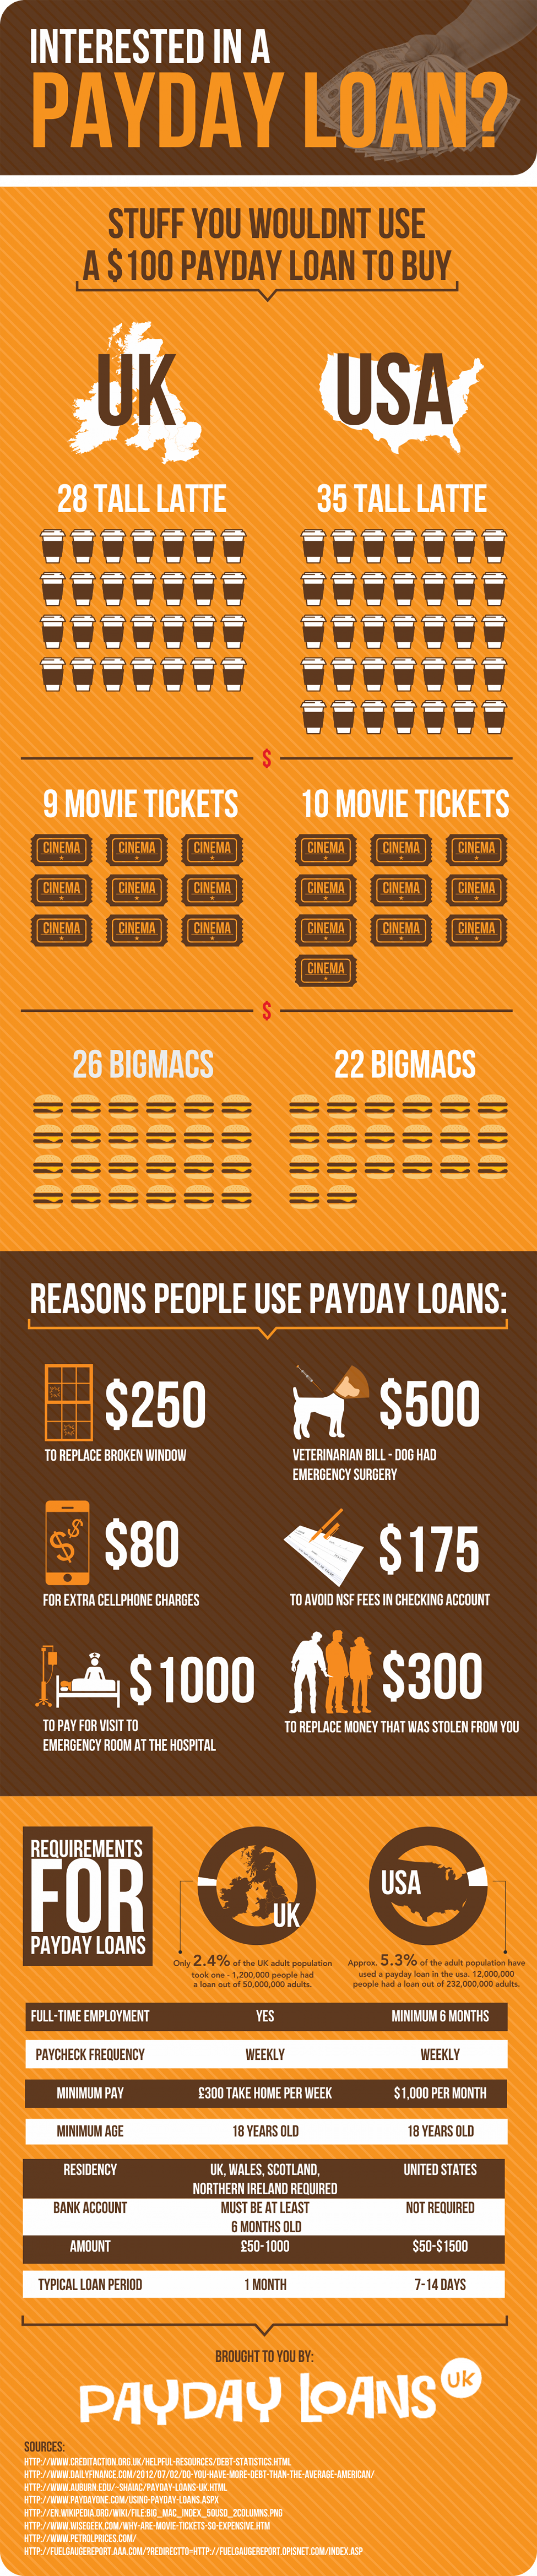 Interested in a Payday Loan? Infographic